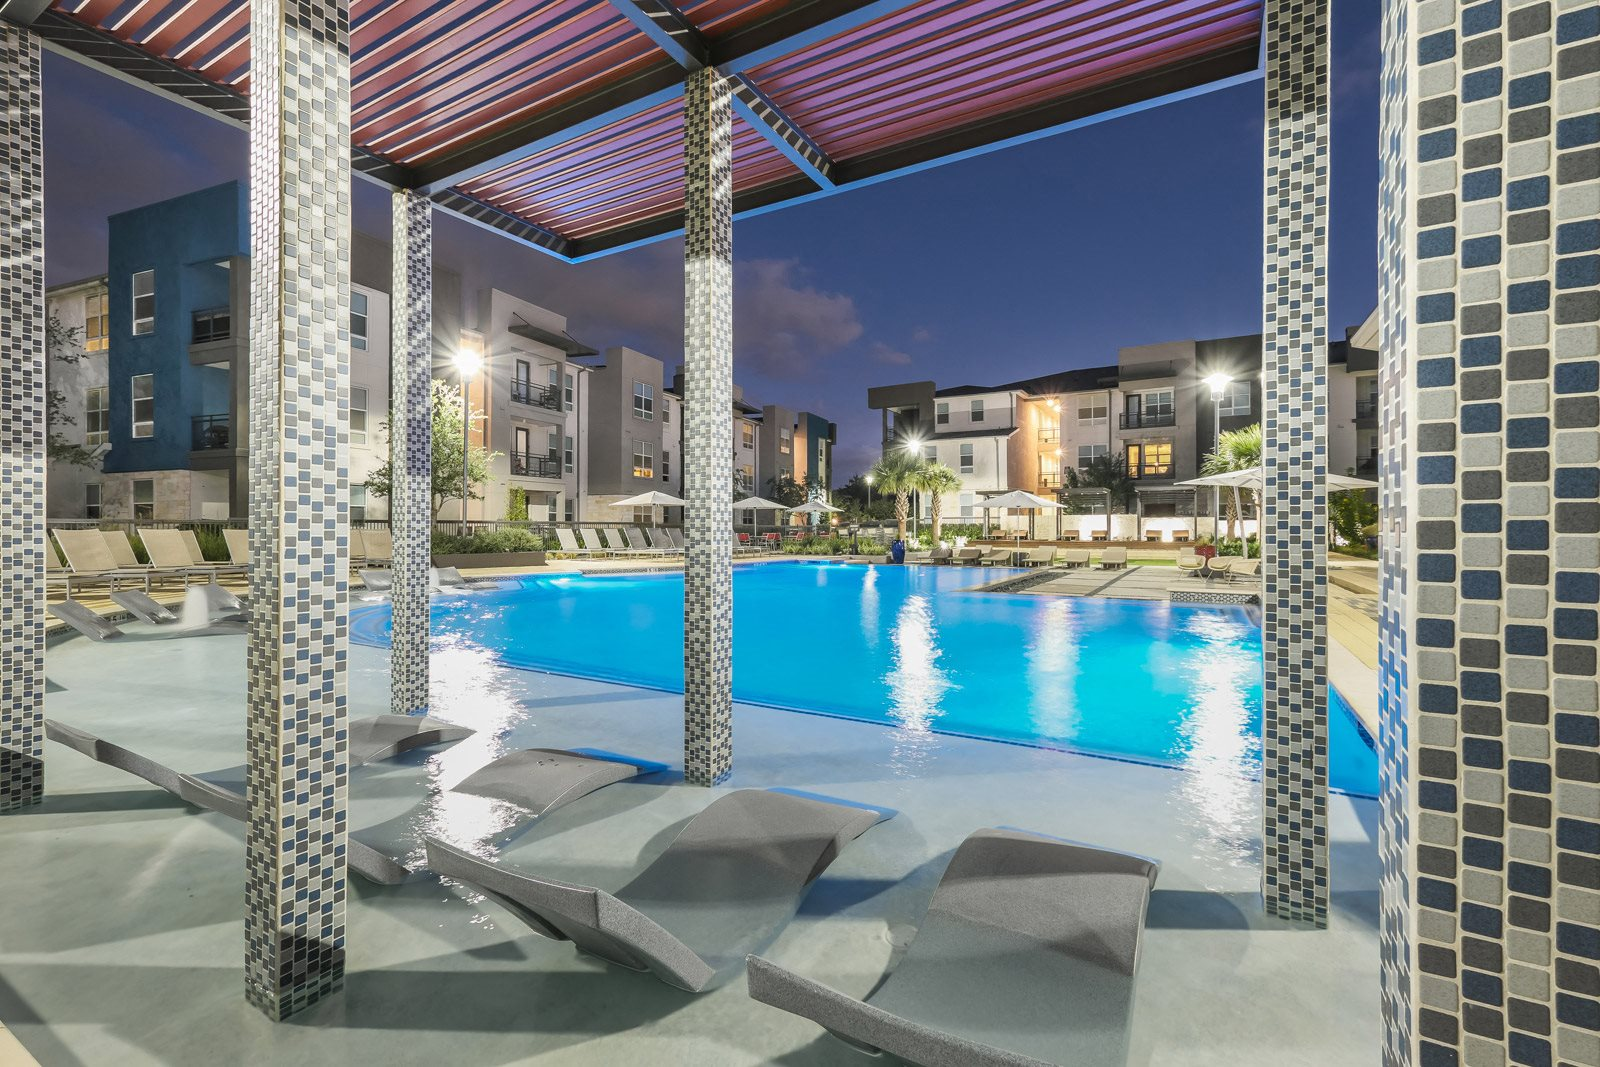 Poolside Lounge Area at Windsor Republic Place, 5708 W Parmer Lane, Texas